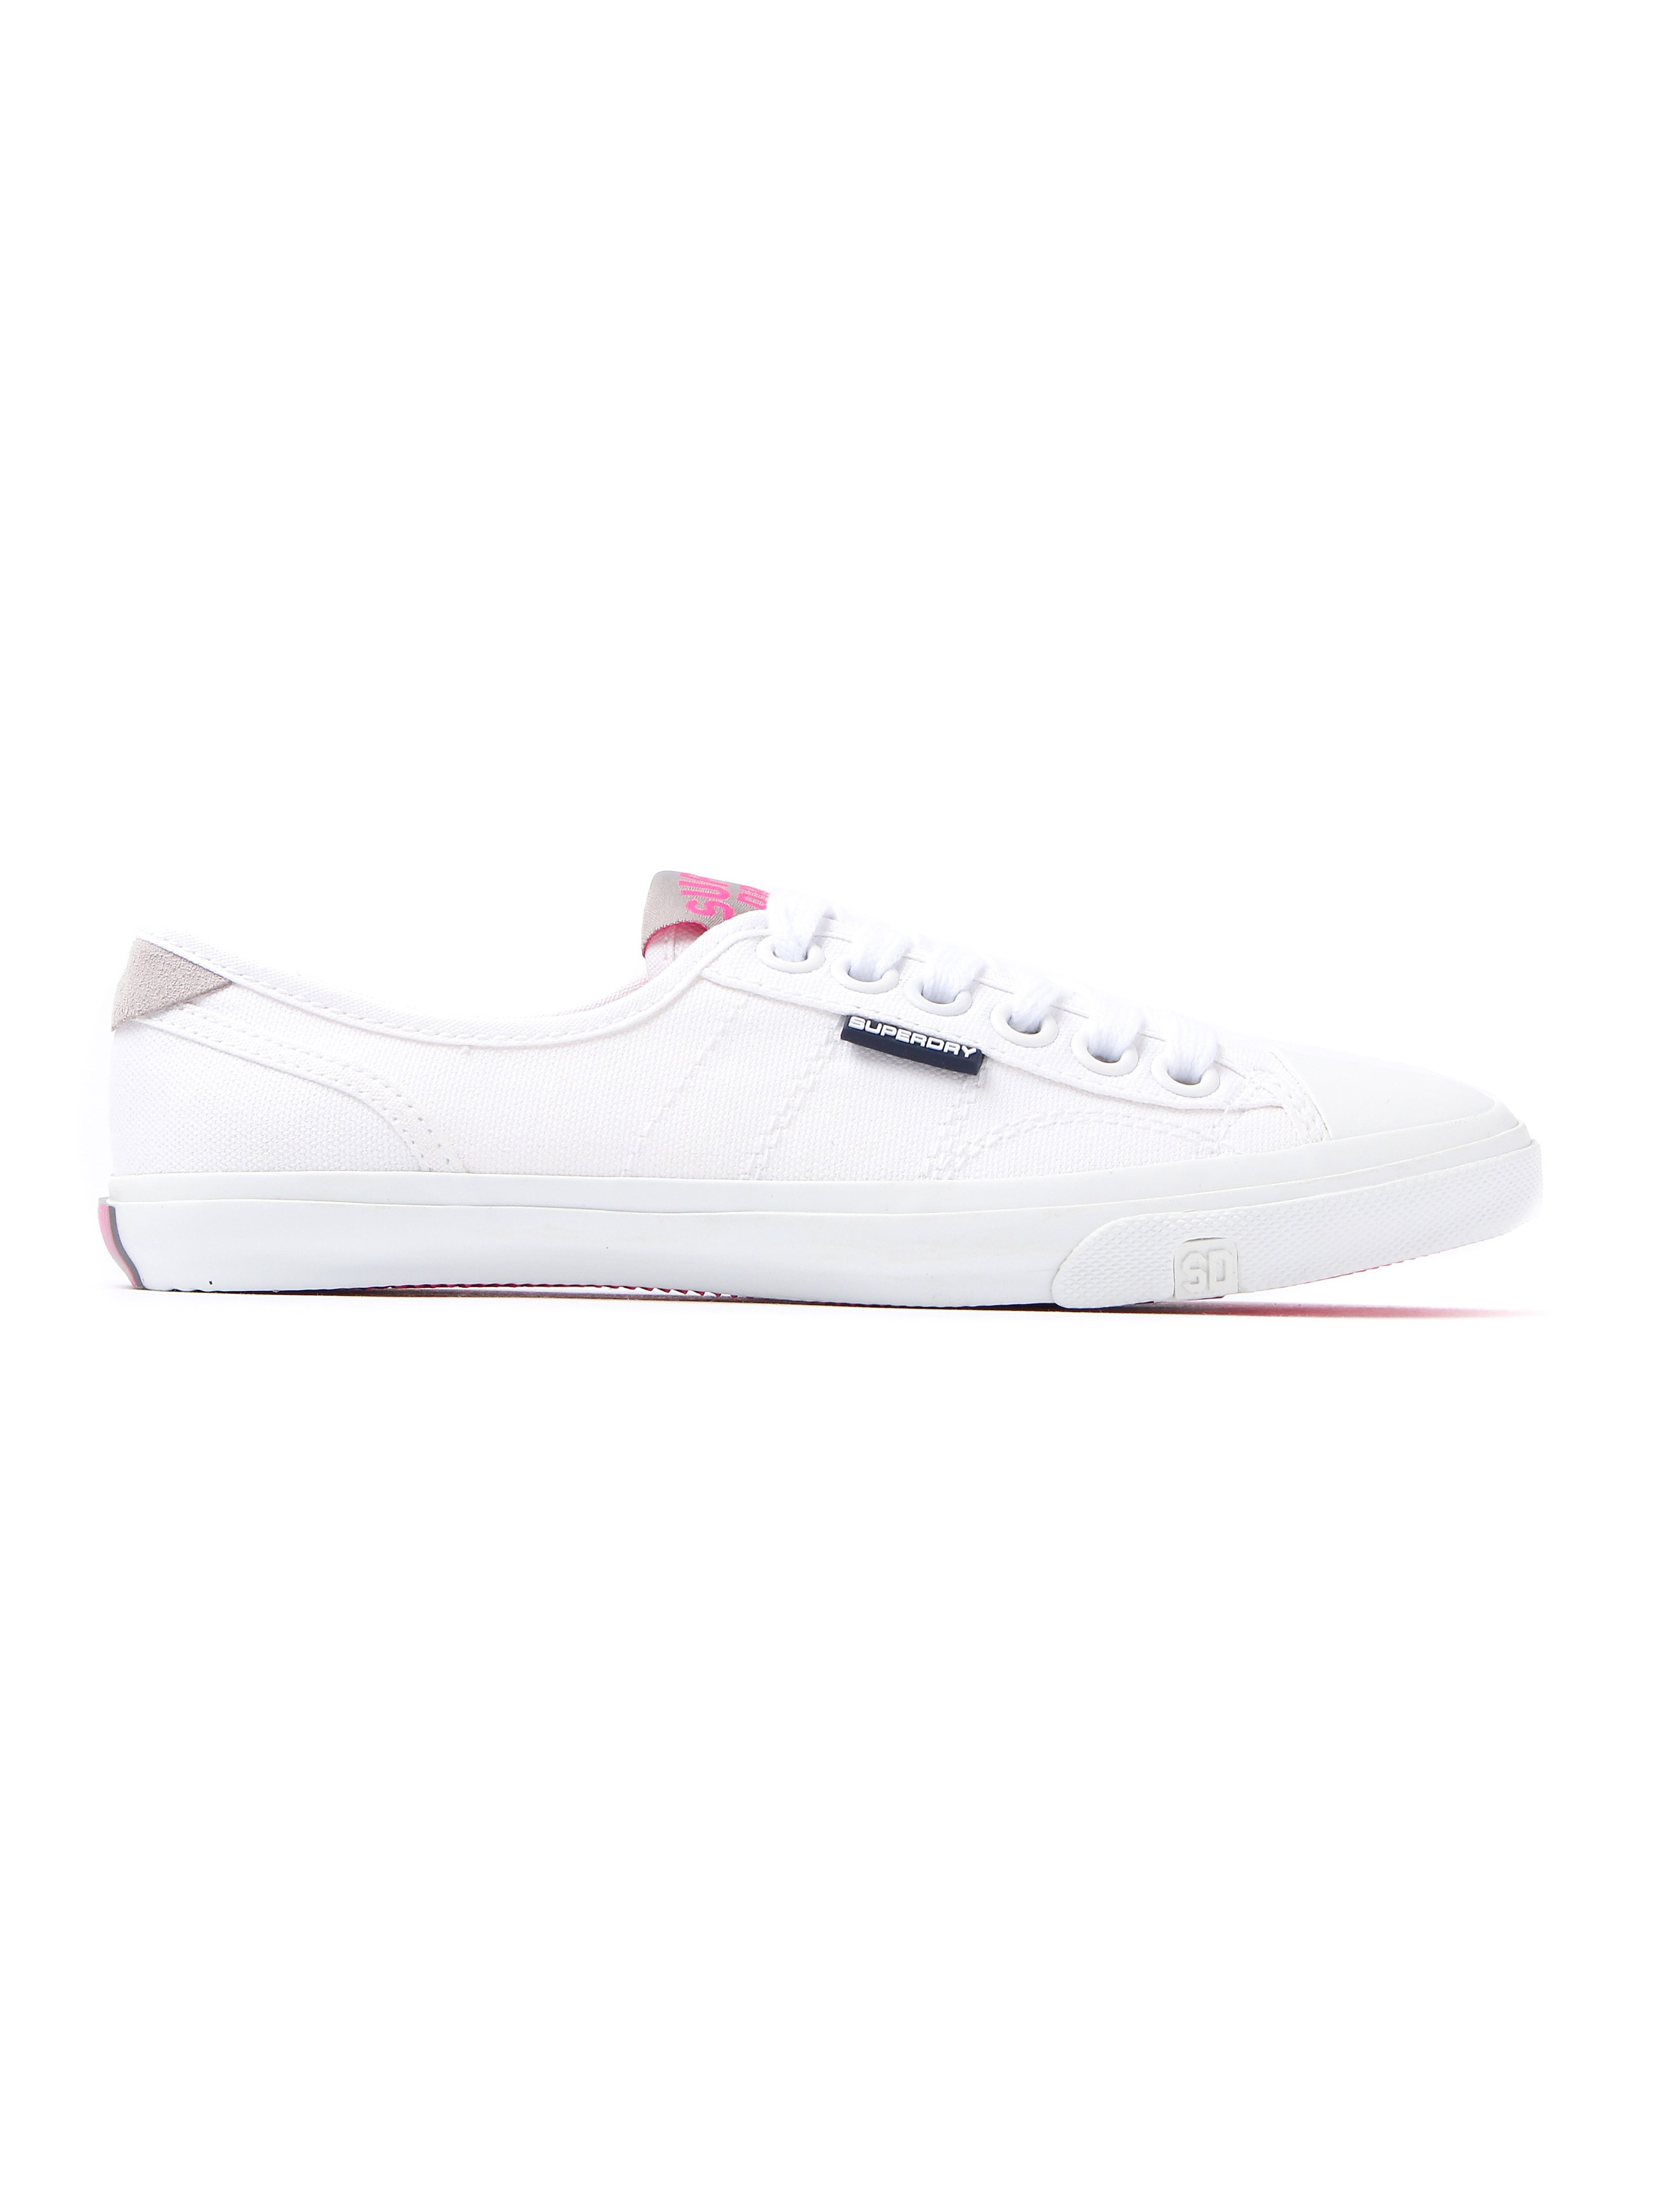 Superdry Women's Low Pro Lace Up Canvas Trainers - White